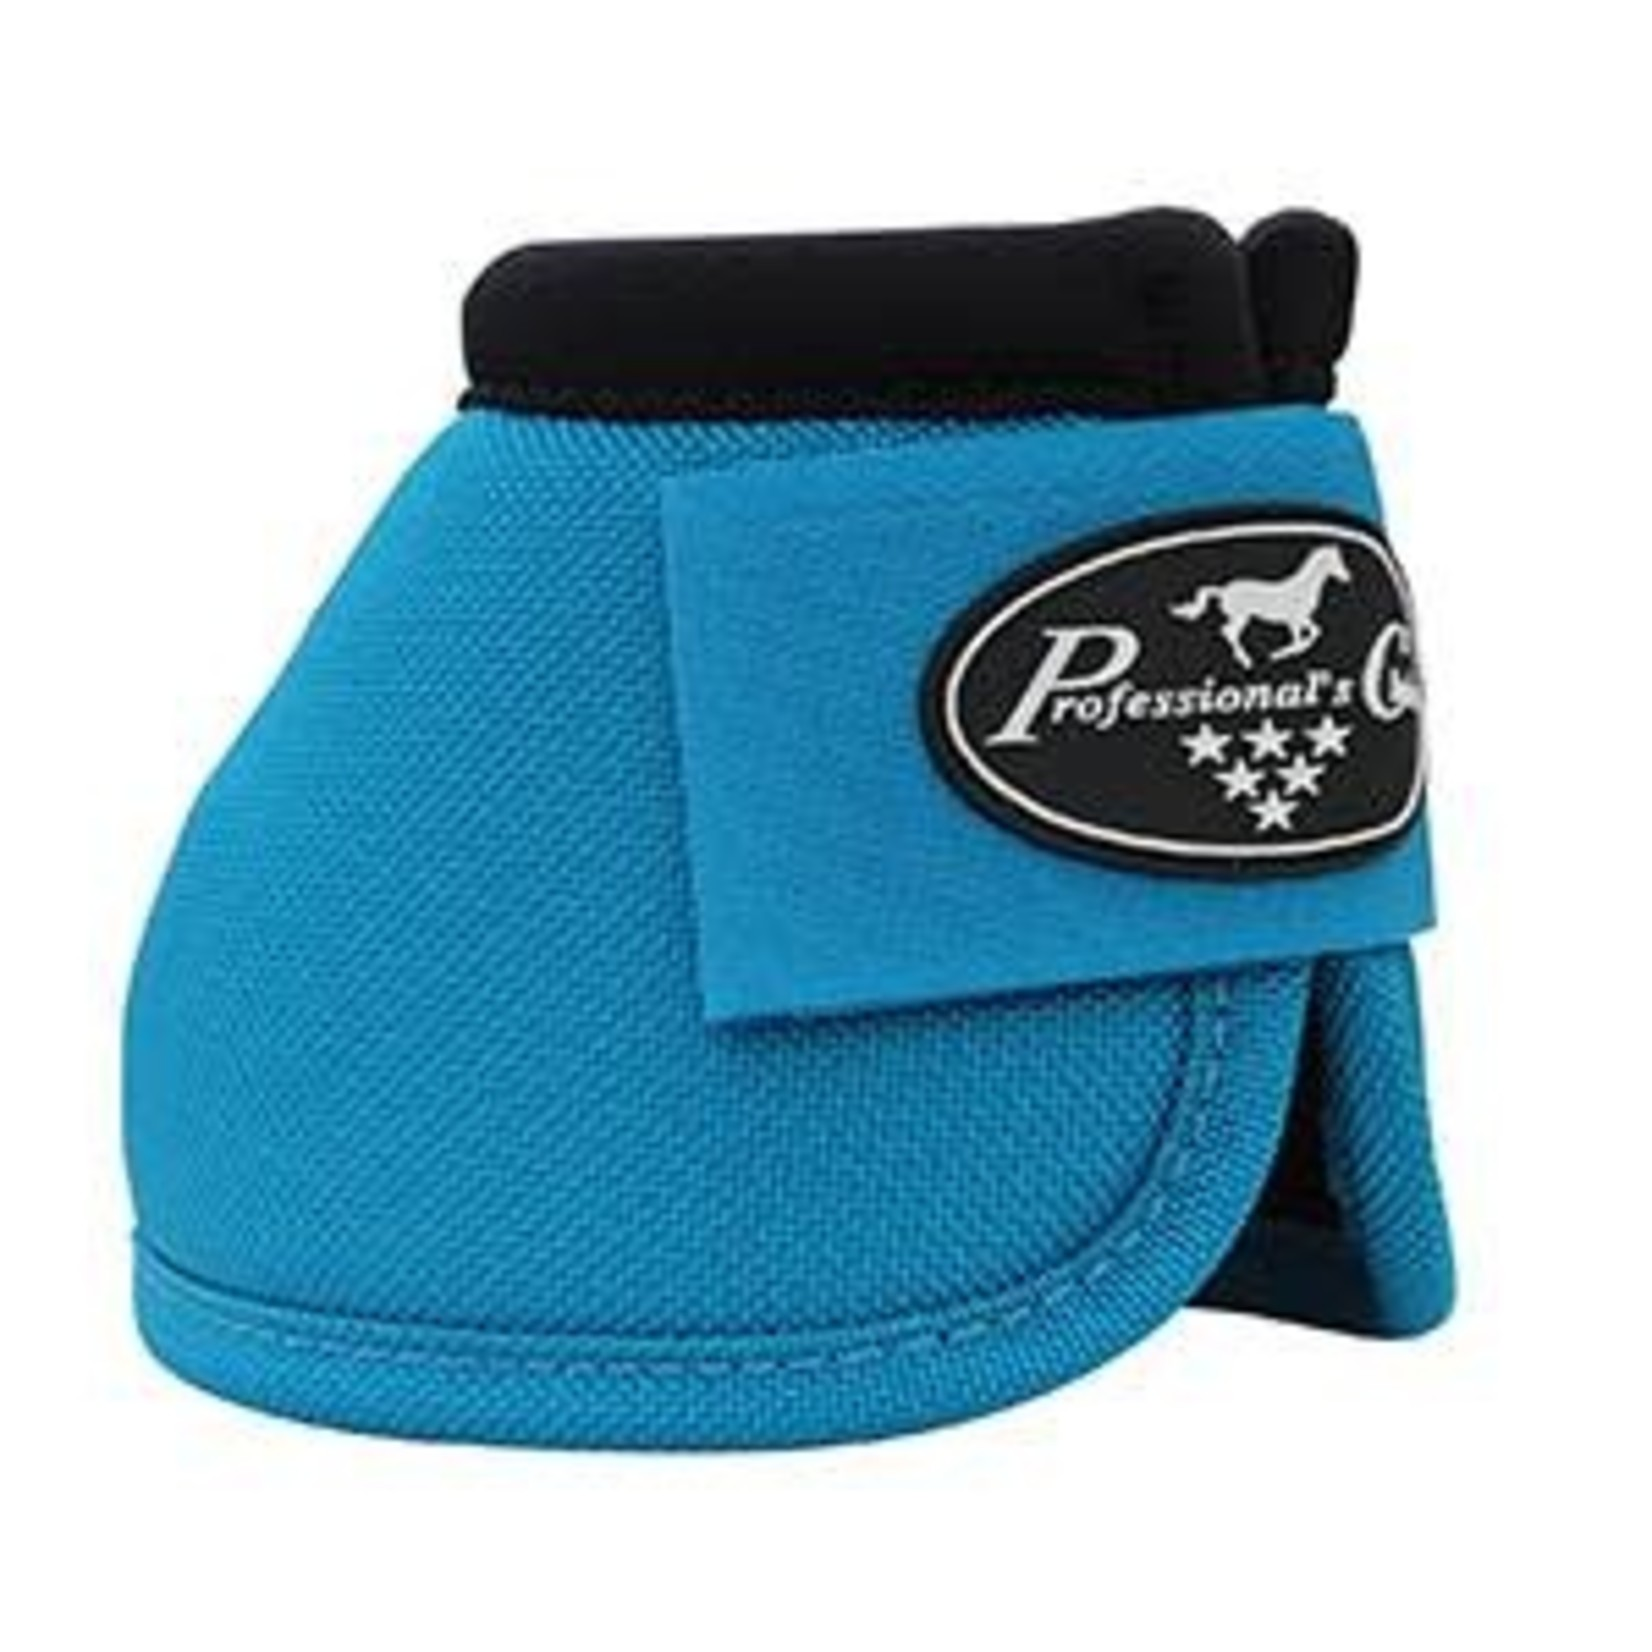 Professional's Choice Med/Pac PC Ballistic Bell Boot